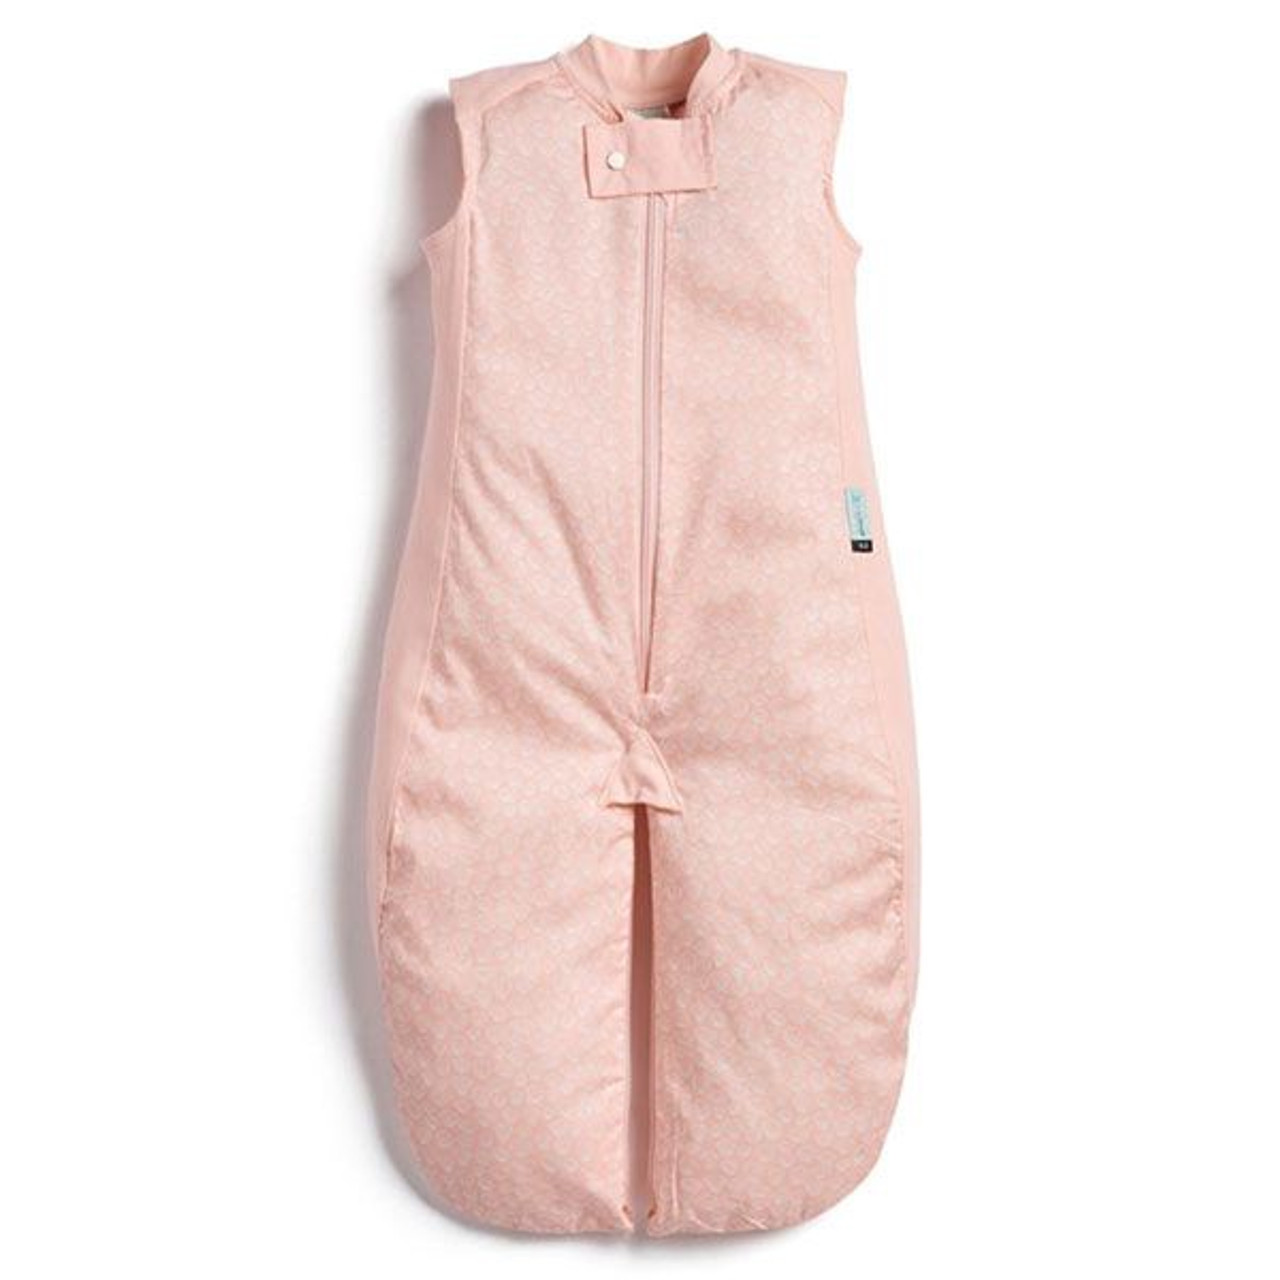 Ergopouch Sleep Suit Bag 0.3 Tog 2-4 Years SHELLS at Baby Barn Discounts